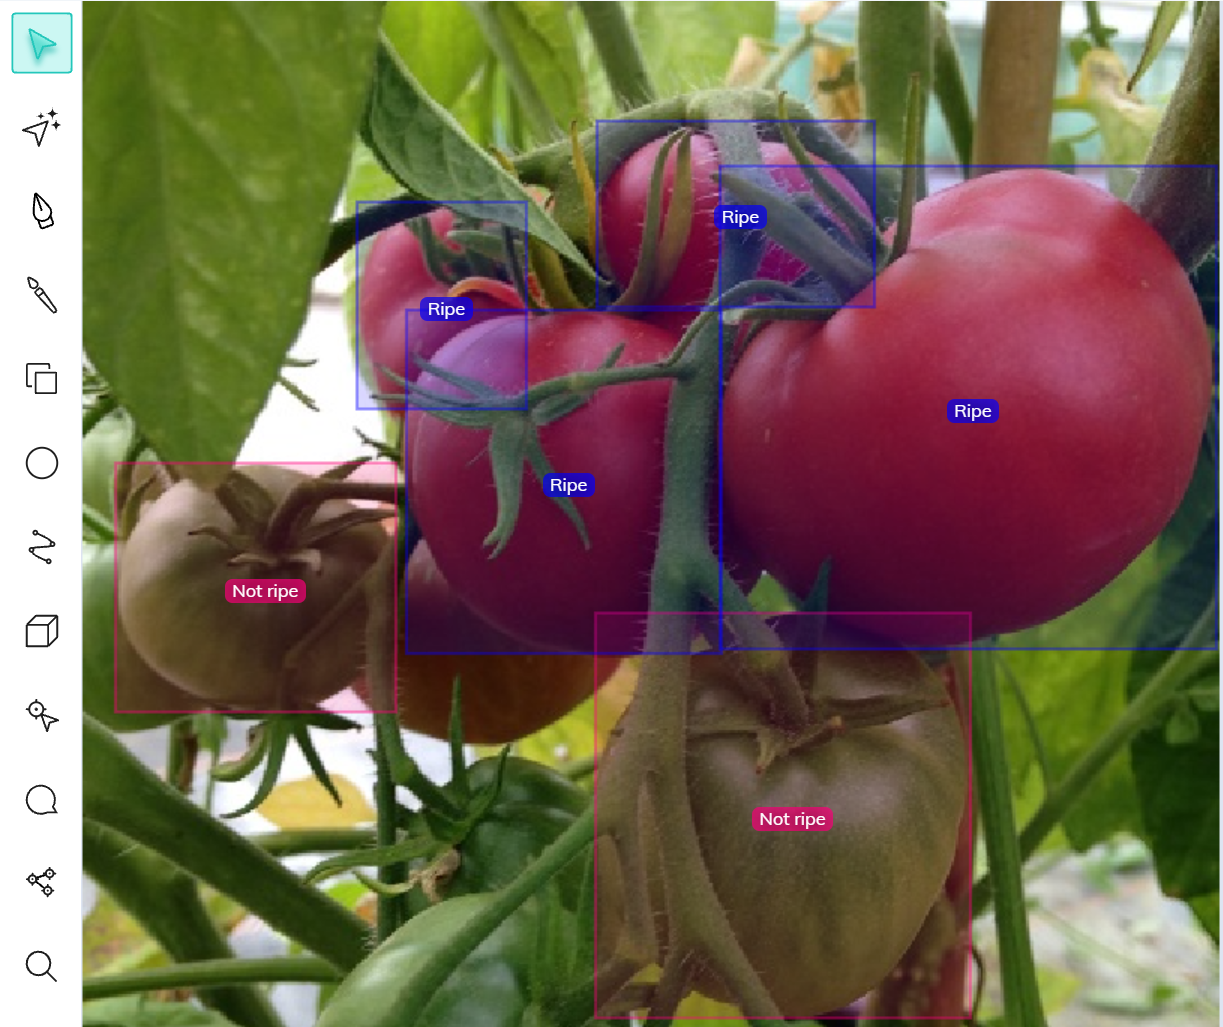 Ripe vs. not ripe tomatoes annotated with bounding boxes using V7